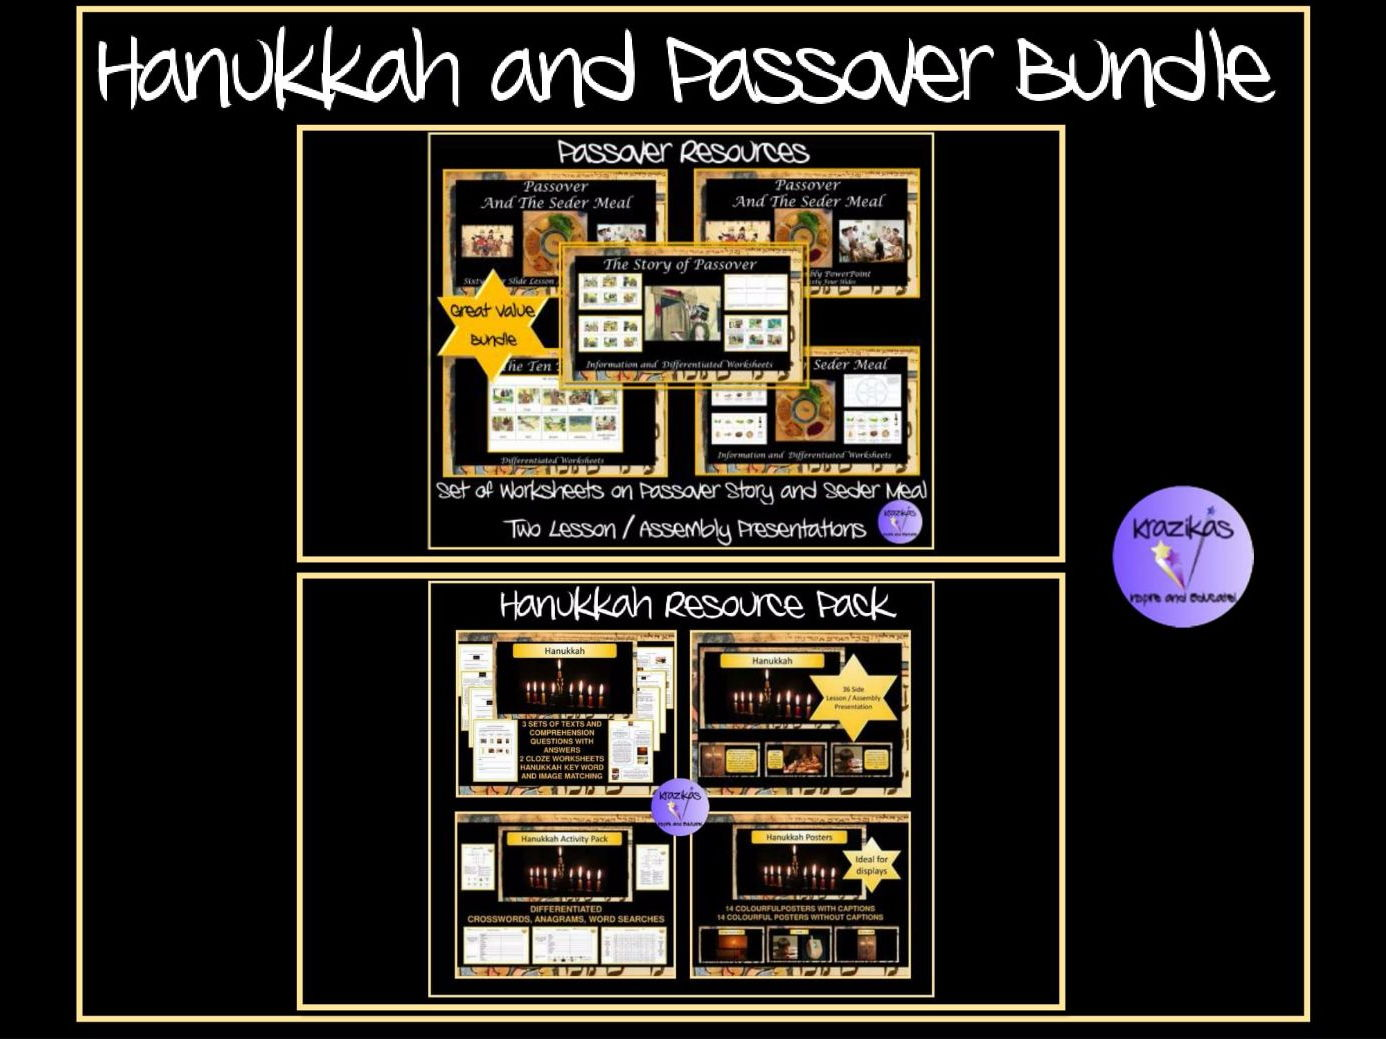 Passover and Hanukkah Teaching and Learning Resource Bundle